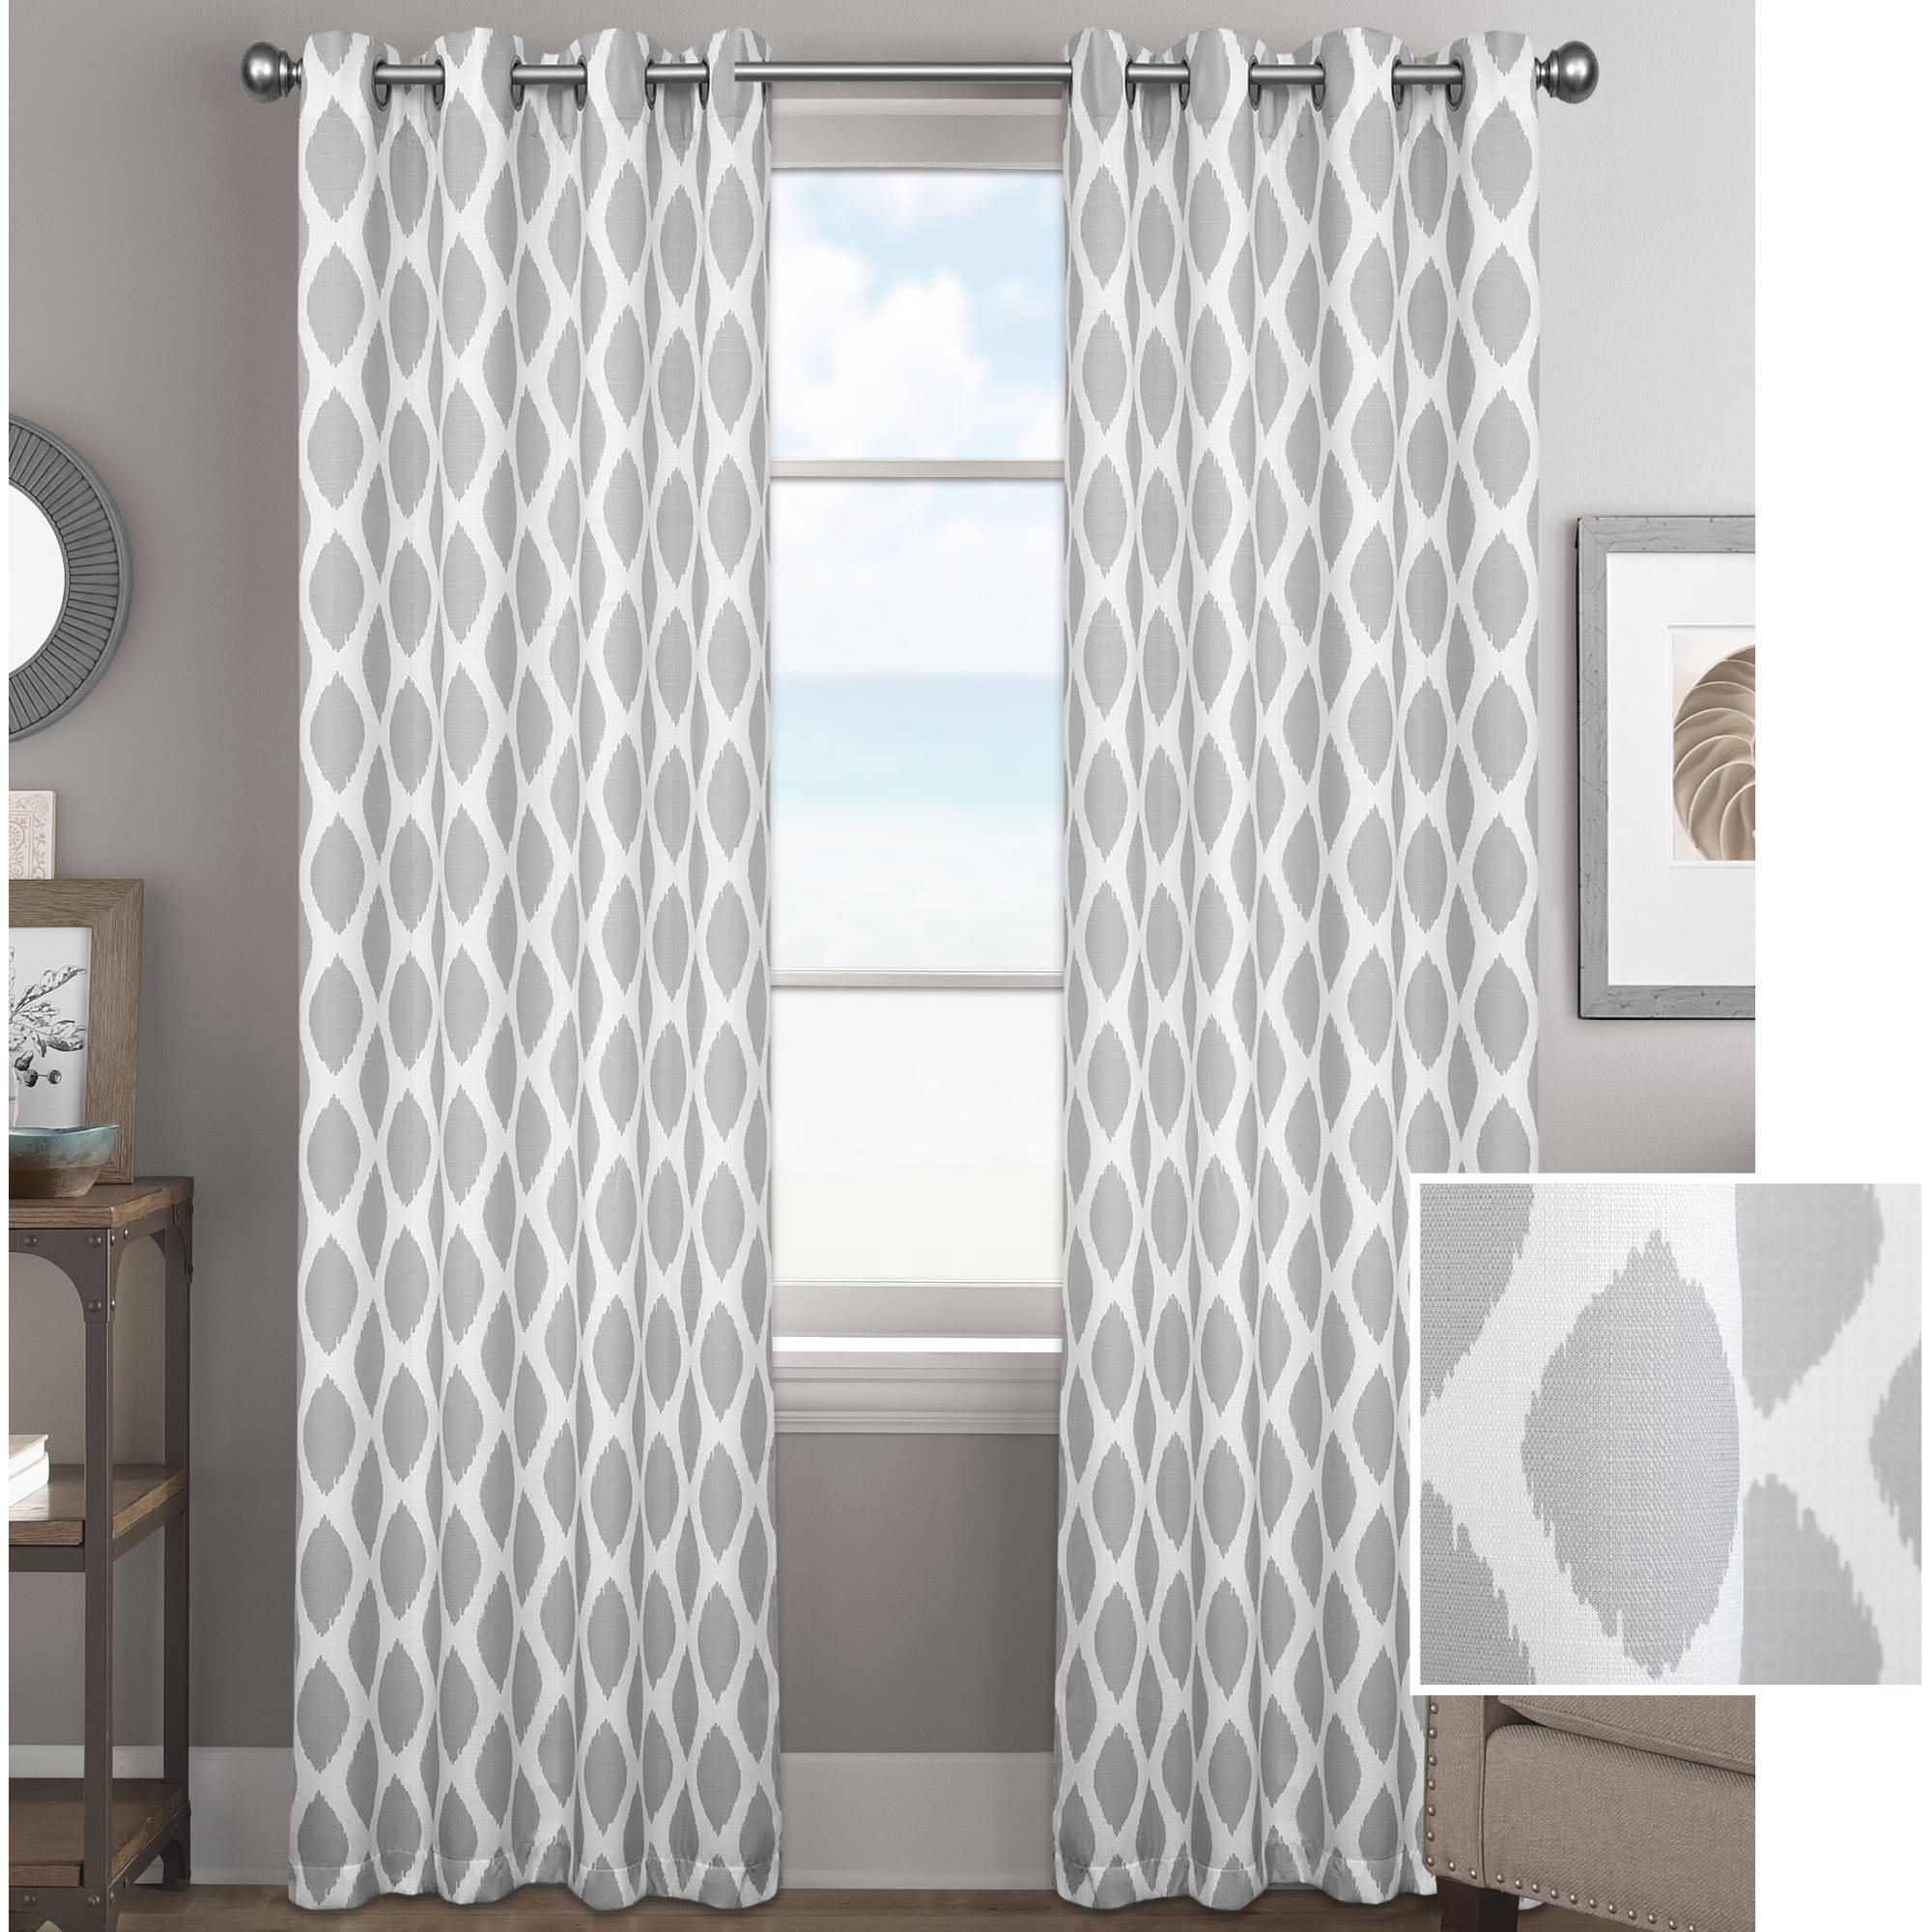 Better Homes And Gardens Ikat Diamonds Curtain Panel Inside Grey Printed Curtain Panels (View 10 of 20)